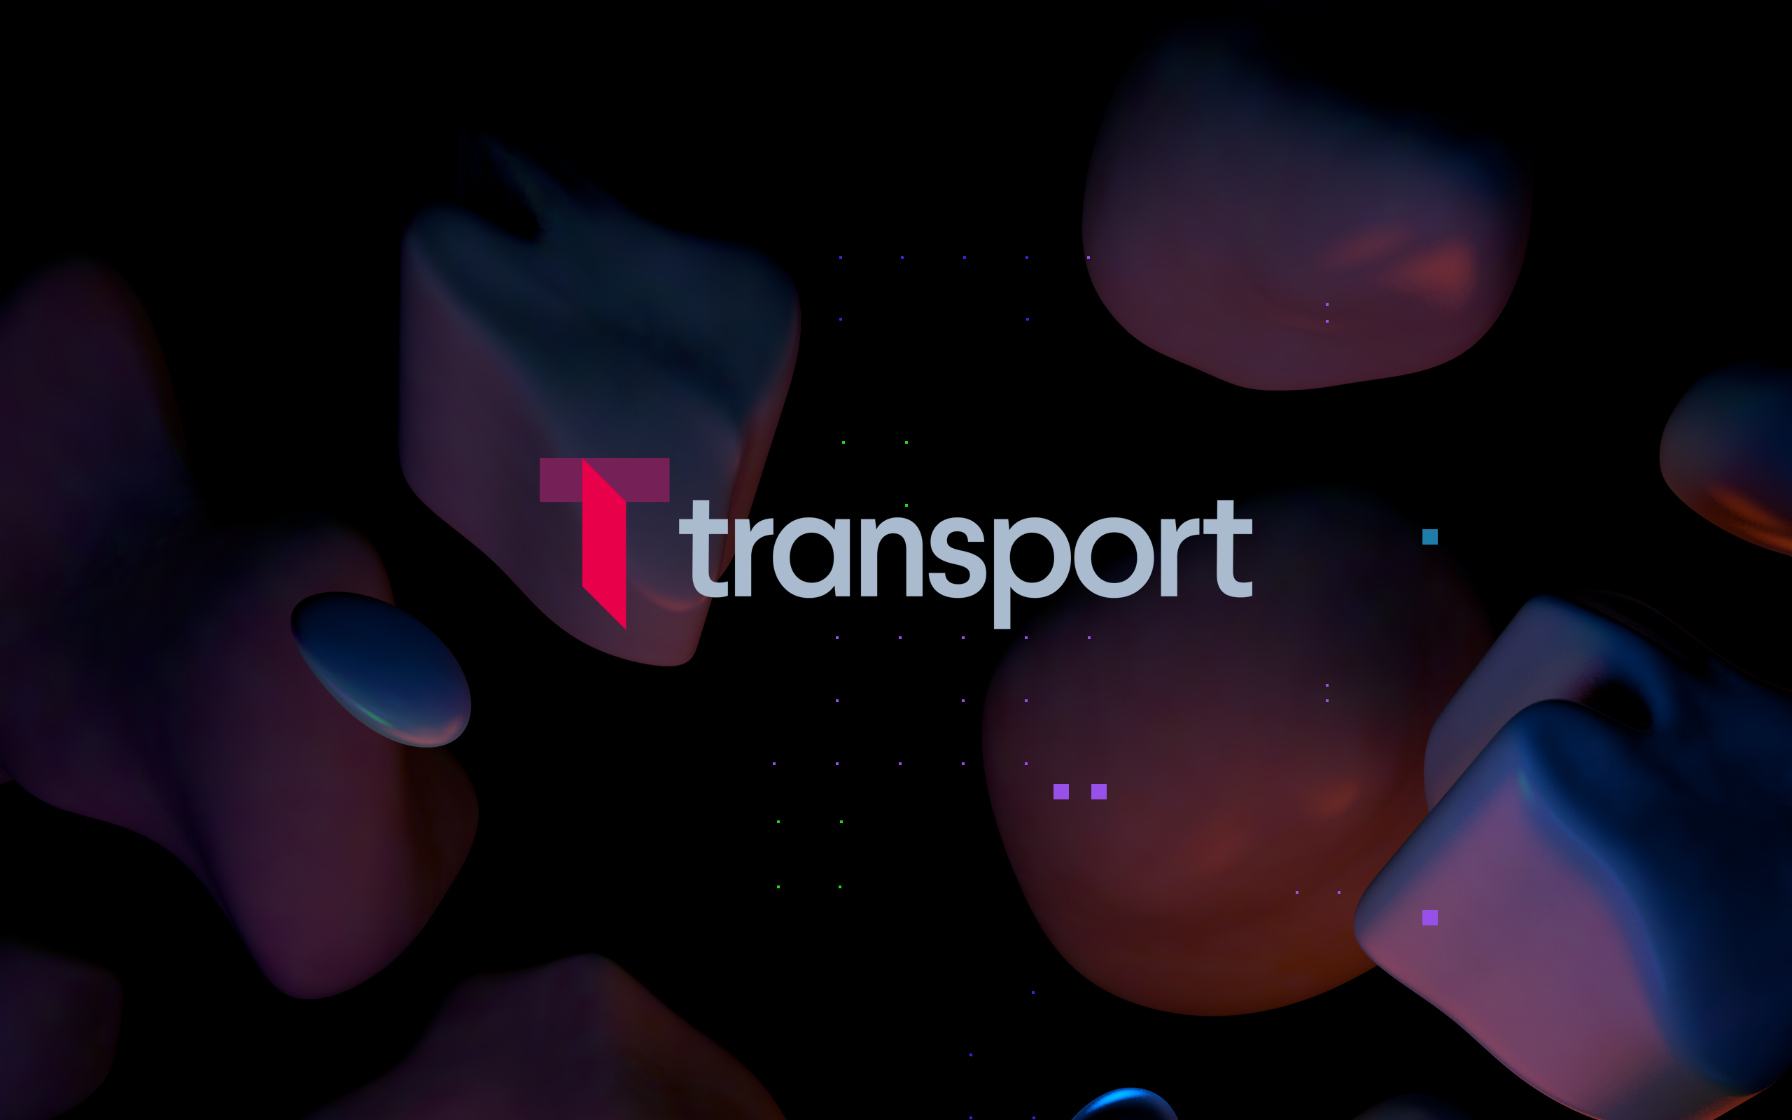 WEVR Unveils 'Transport' VR Content Network, Announces Over $25M Investment – Road to VR